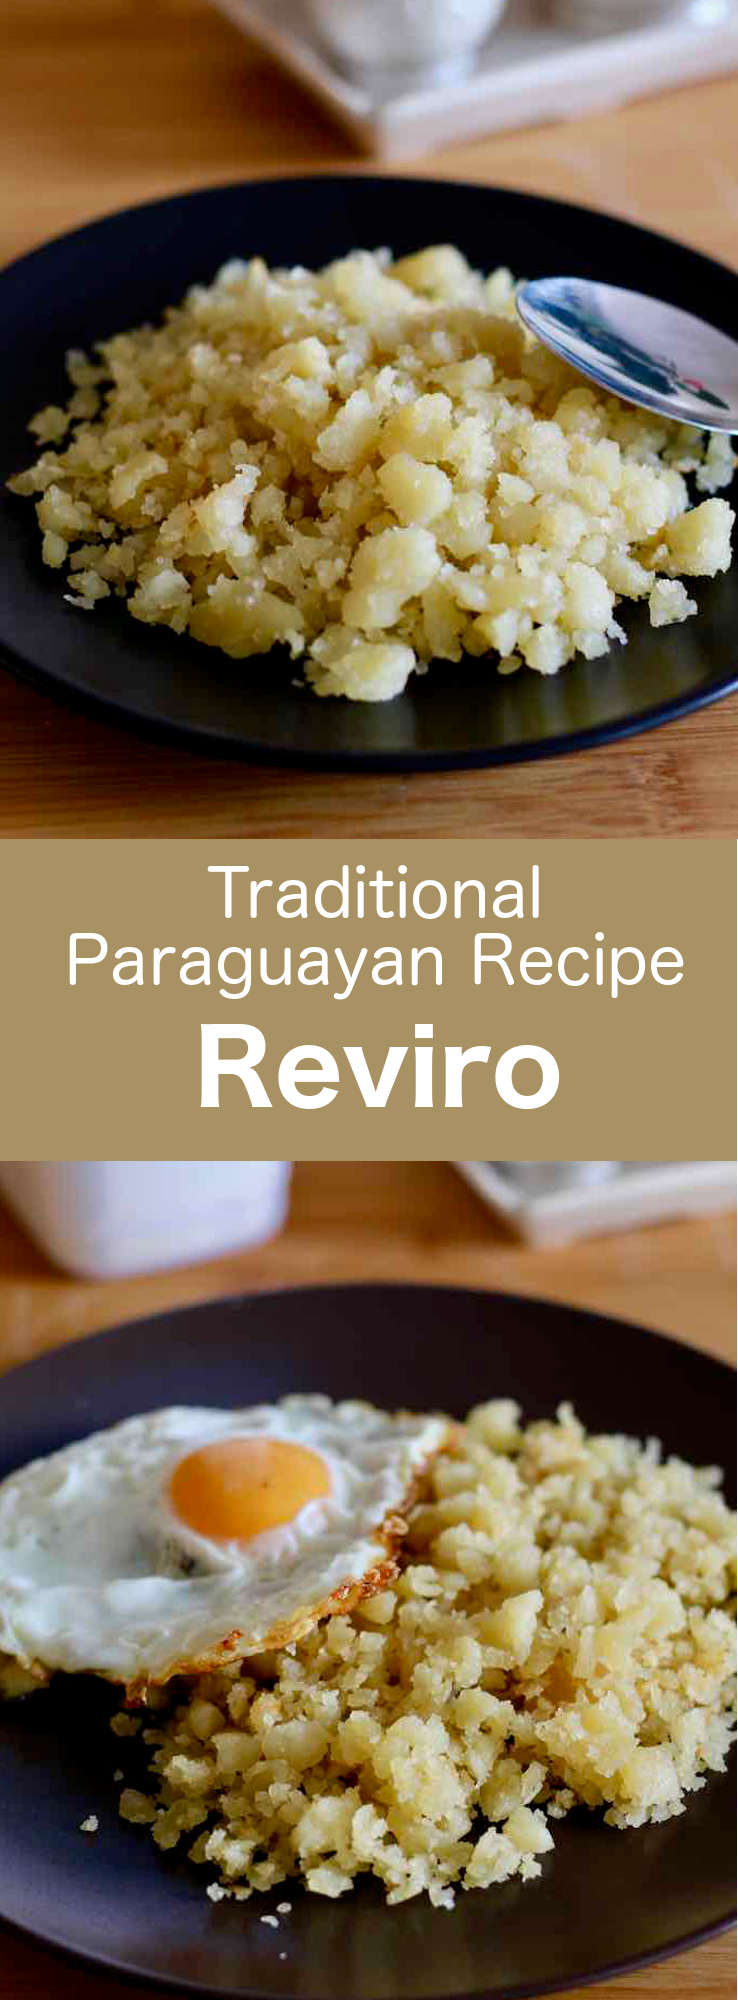 Reviro is a traditional recipe from the Misiones province in the northeast of Argentina, close to the border with Paraguay and Brazil. It consists of a fried dough that is broken into small croutons. #Paraguay #ParaguayanCuisine #ParaguayanRecipe #LatinAmericanCuisine #LatinAmericanRecipe #SouthAmericanCuisine #SouthAmericanRecipe #WorldFlavors #196flavors